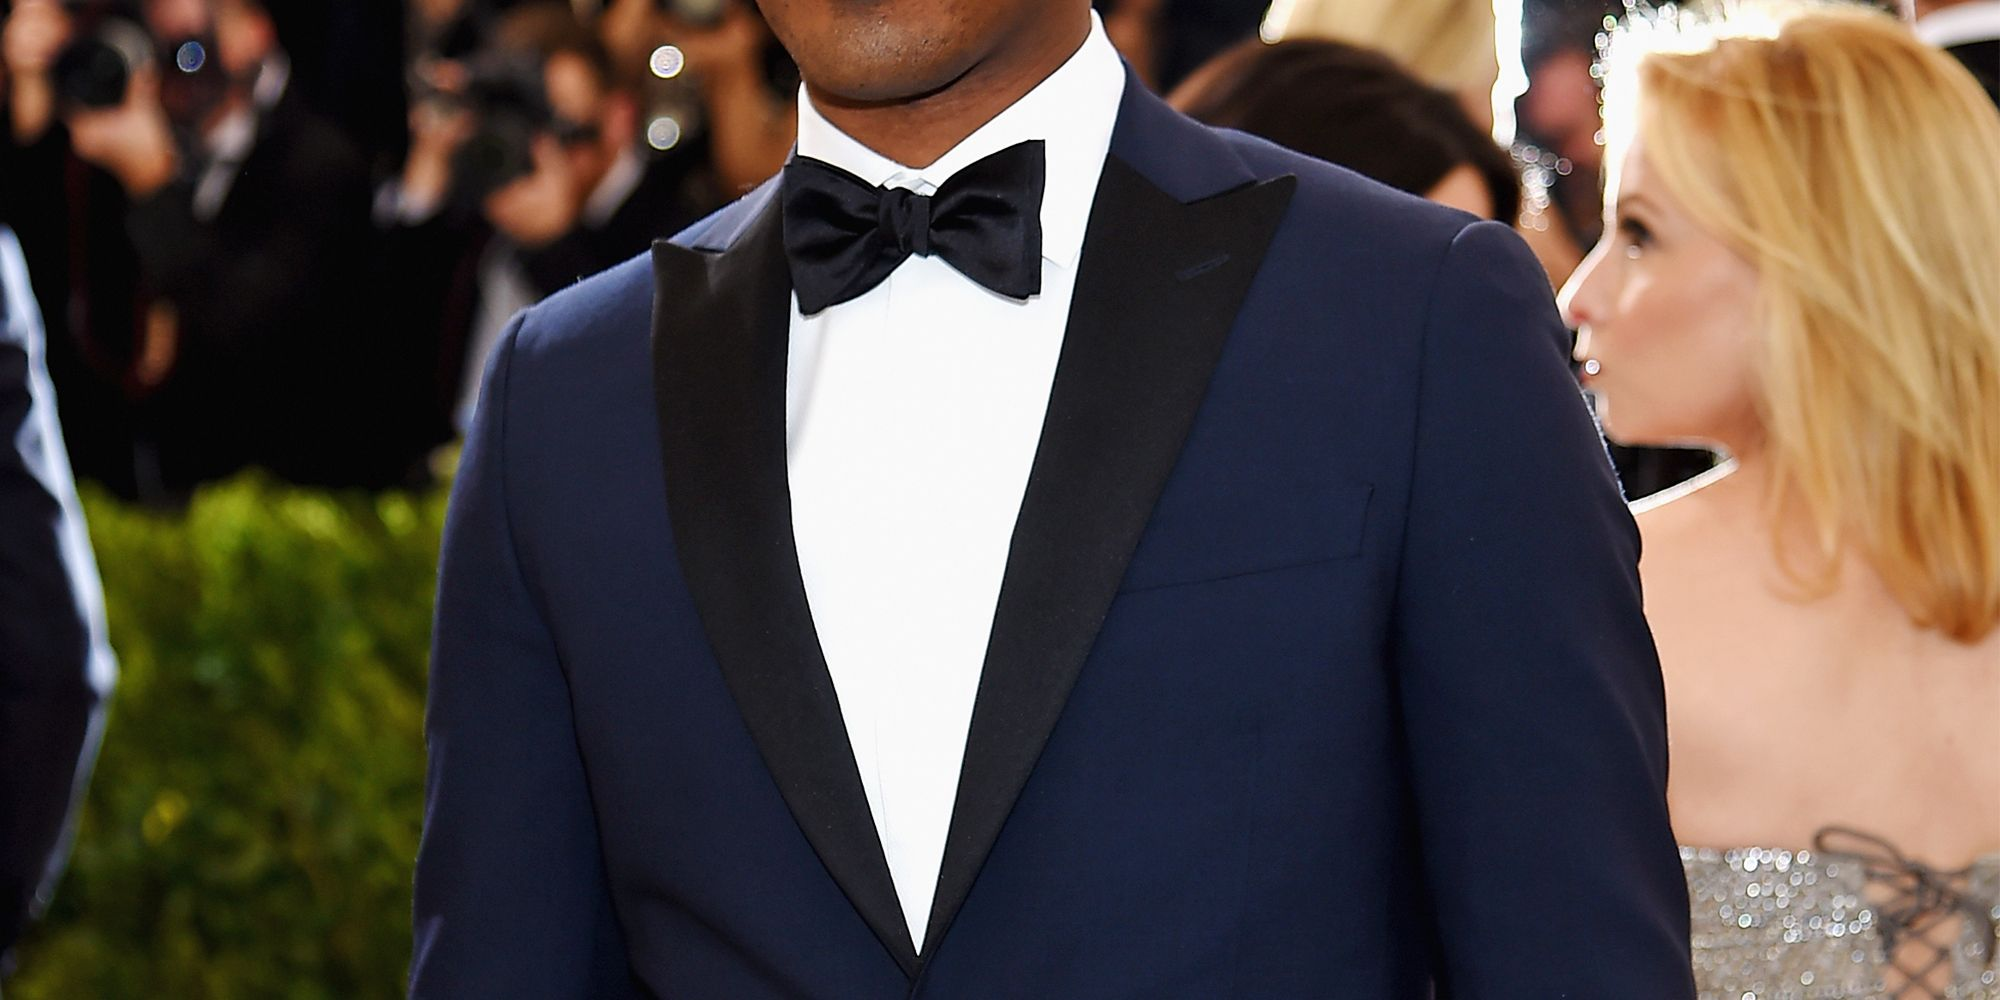 Yes, You Can Afford to Own a Tuxedo